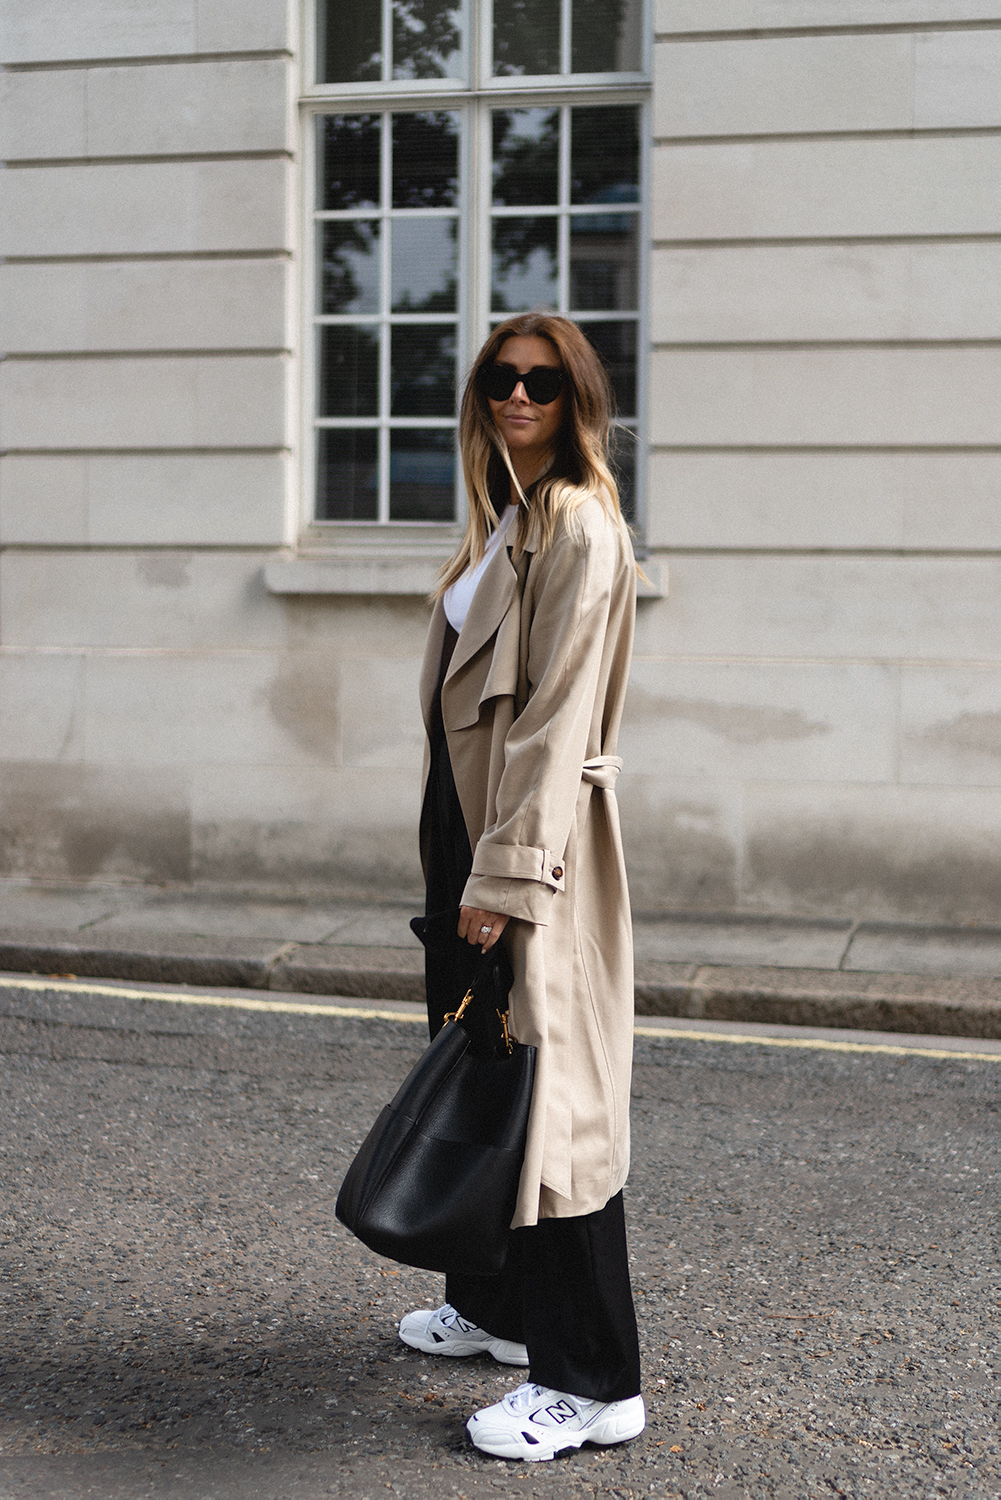 Emma Hill wears beige trench coat, white ribbed cotton vest top, black tailored trousers, New Balance 452 trainers, Celine baby audrey sunglasses, black Celine seau sangle bucket bag. Transitional outfit